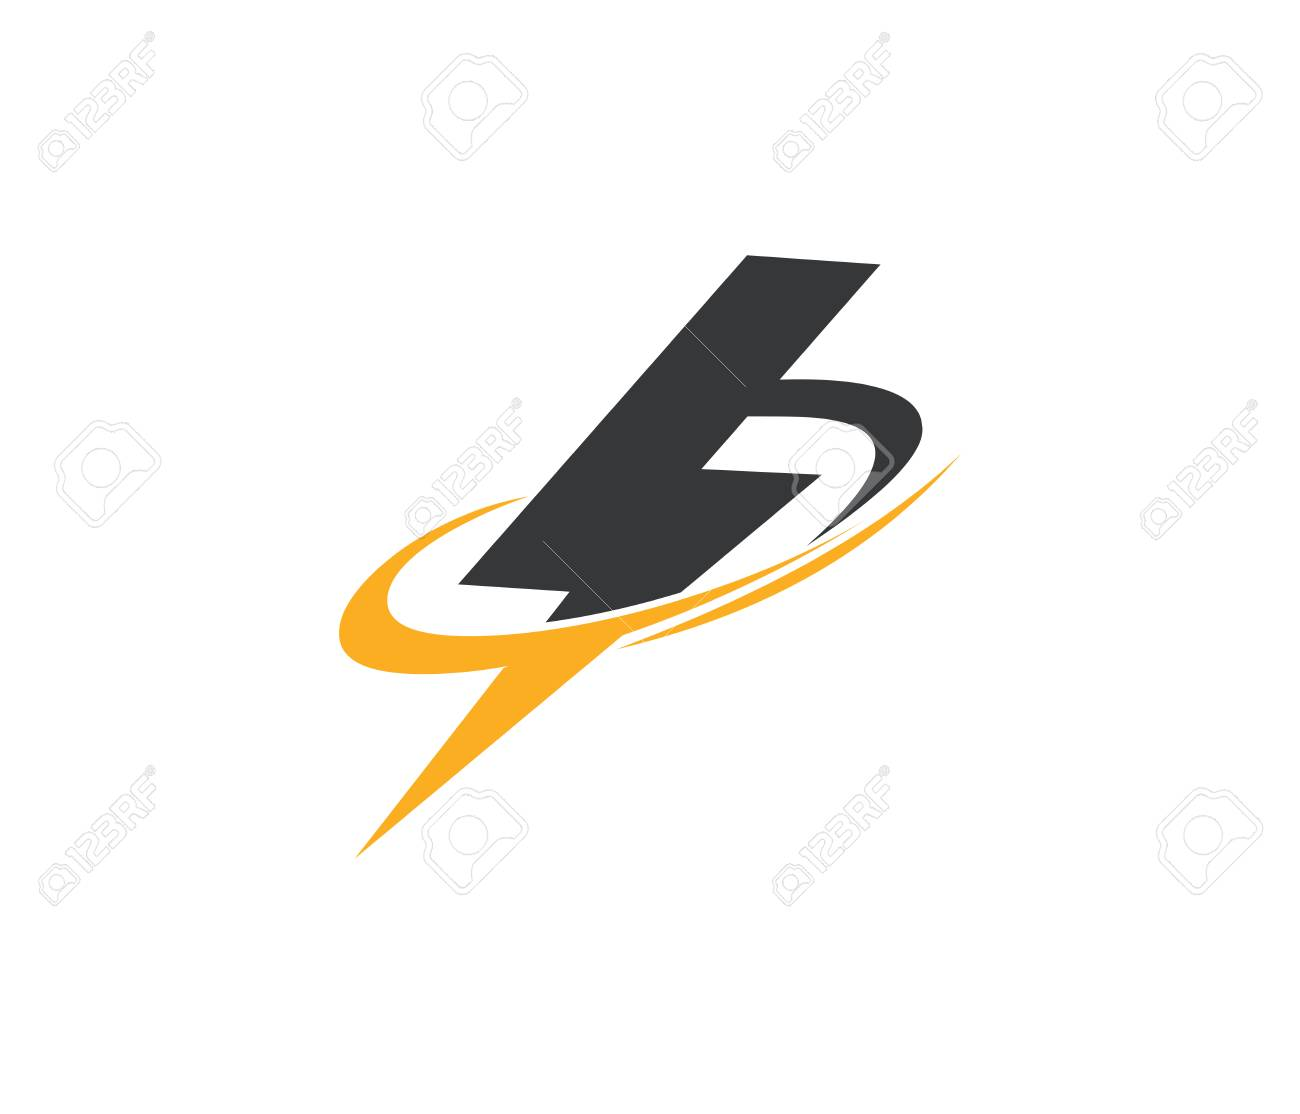 fast lightning power electricity vector logo design template royalty free cliparts vectors and stock illustration image 98180549 fast lightning power electricity vector logo design template